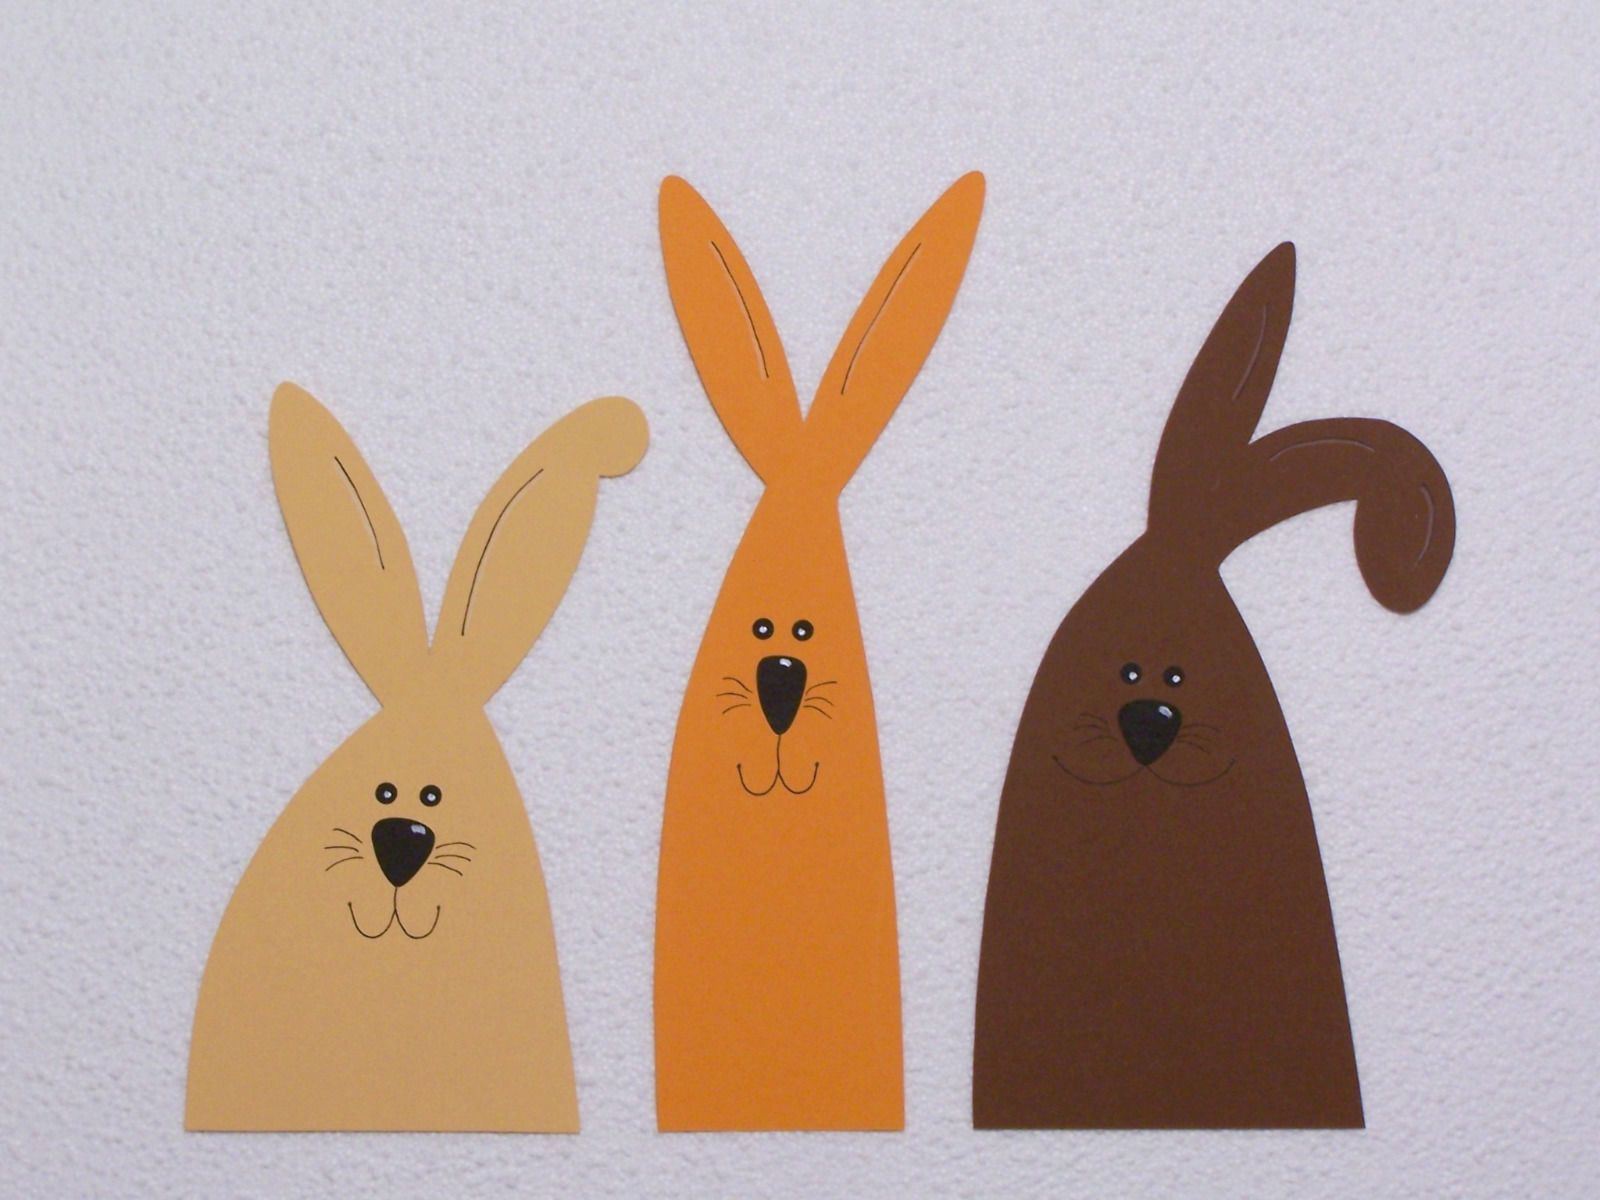 3 window peepers Bunny window decoration Easter cardboard 2 #fensterdekoweihnachtenbasteln